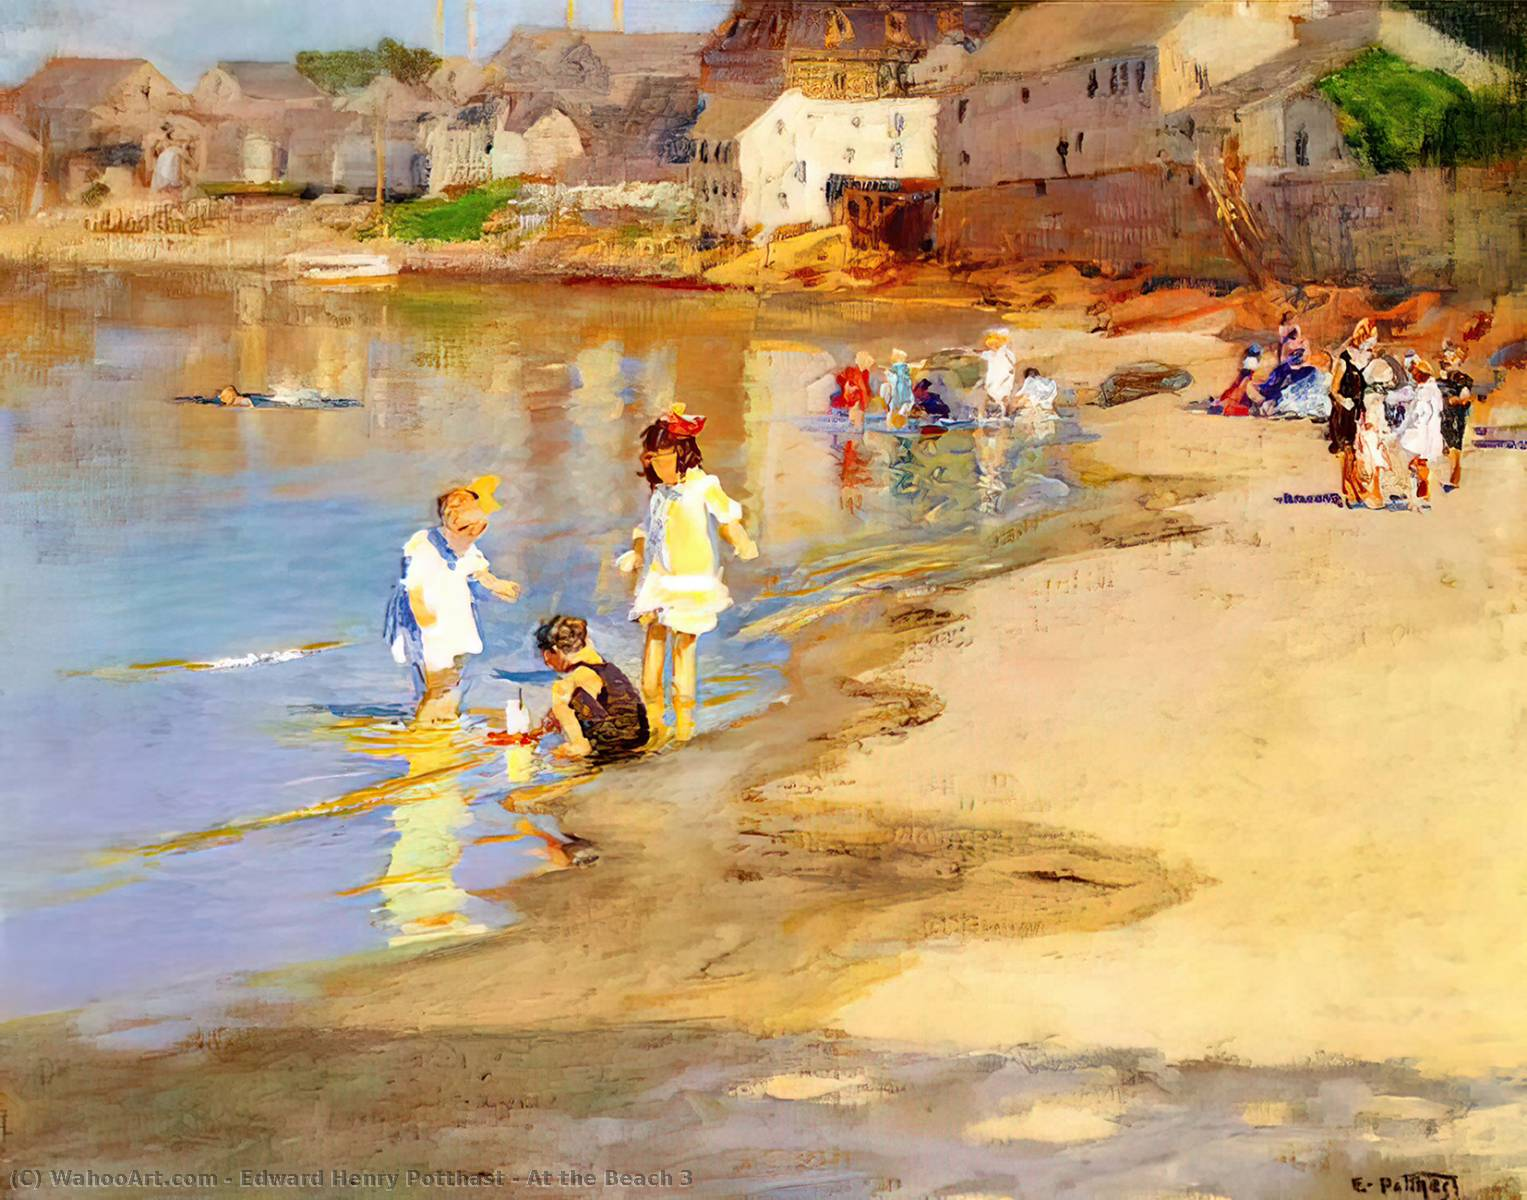 famous painting At the Beach 3 of Edward Henry Potthast